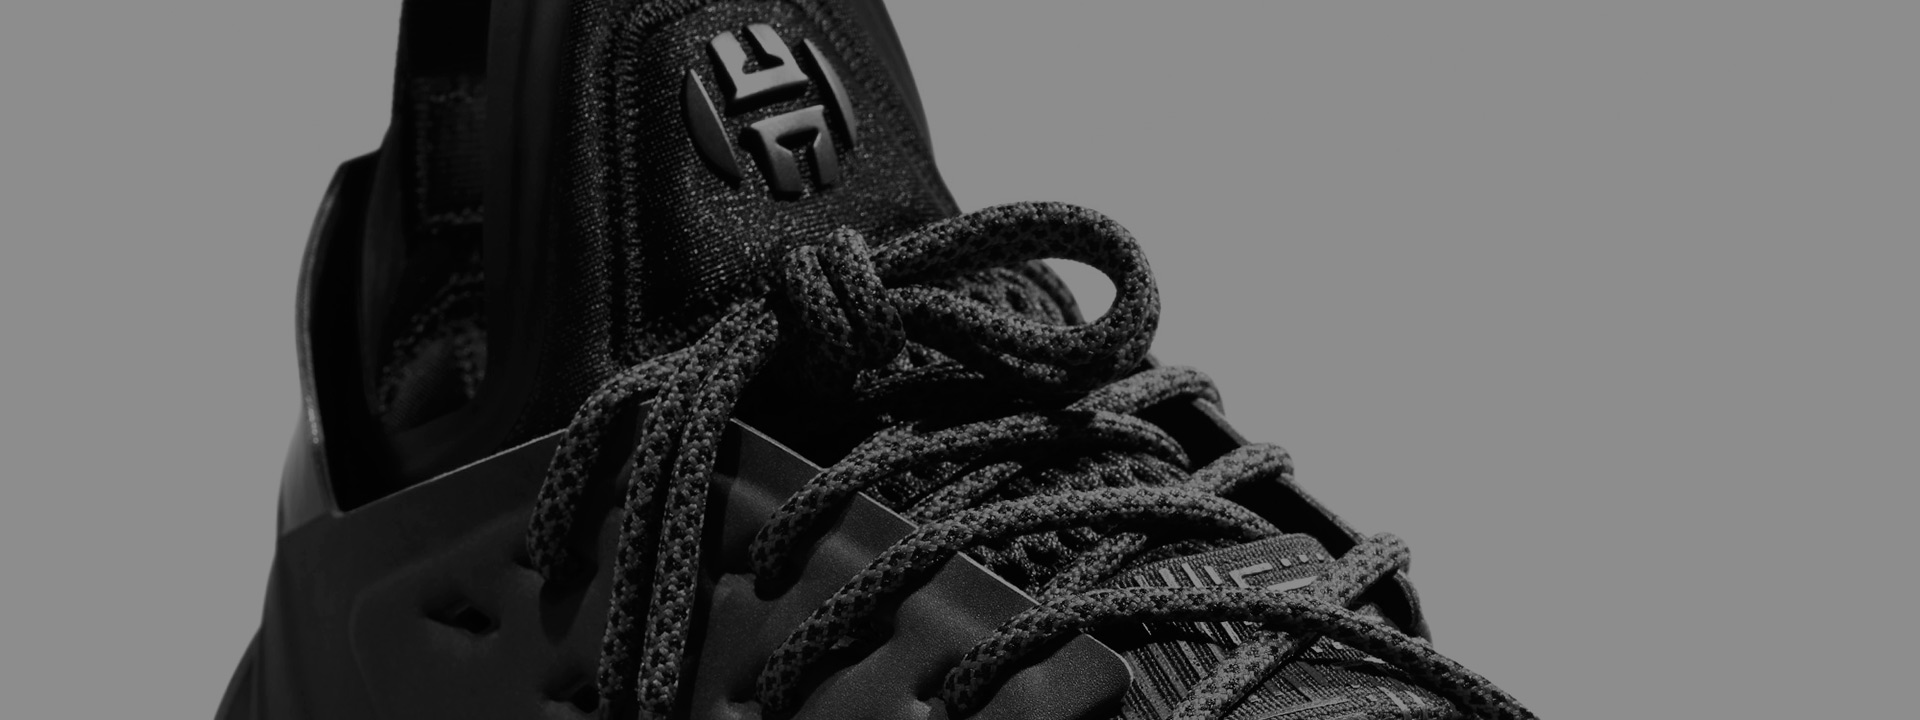 The Design Process Behind The adidas Harden Vol. 2 - SneakerNews.com 9edb4b192